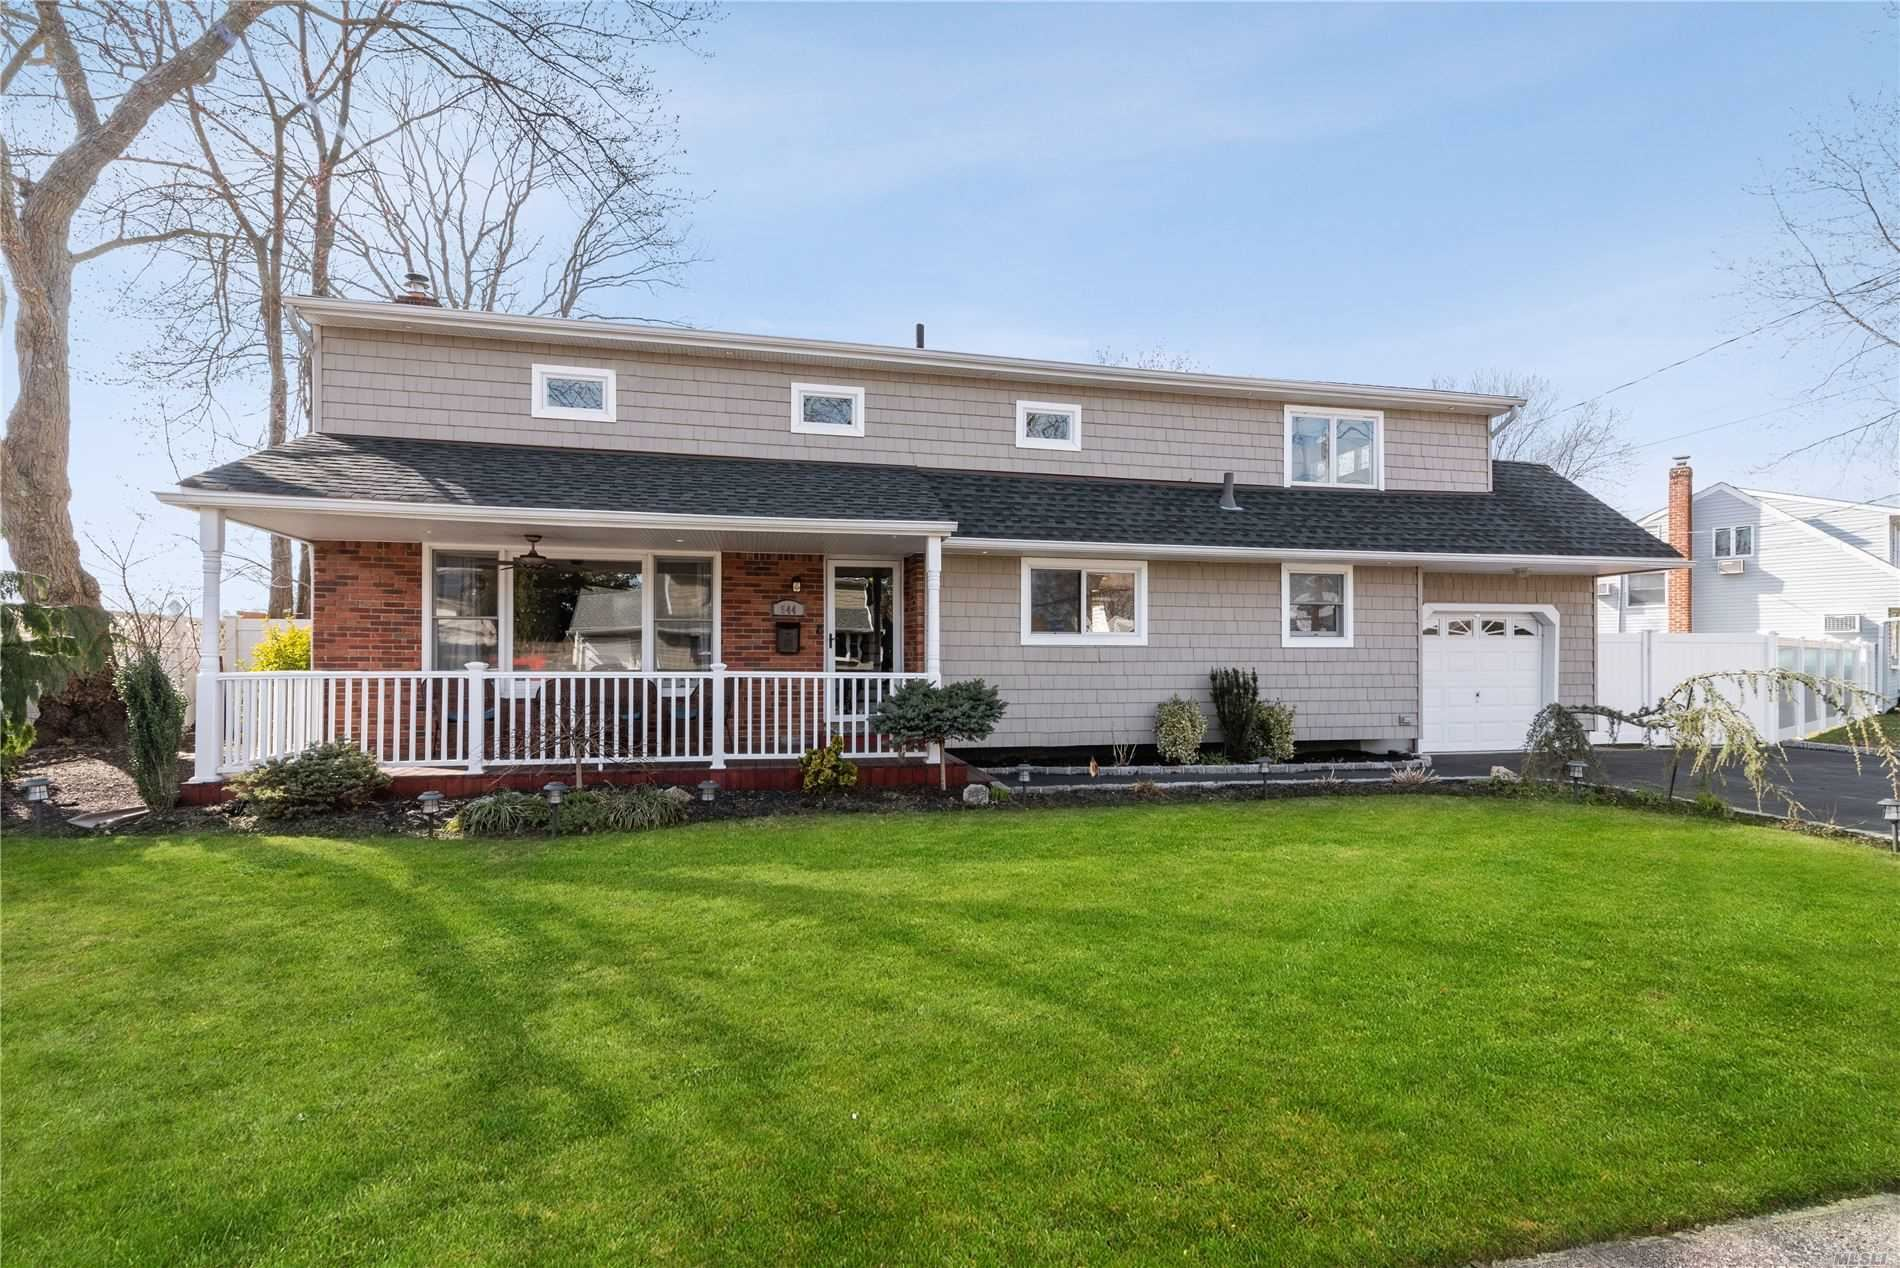 544 Everdell Avenue, West Islip, NY 11795 - MLS#: 3207895